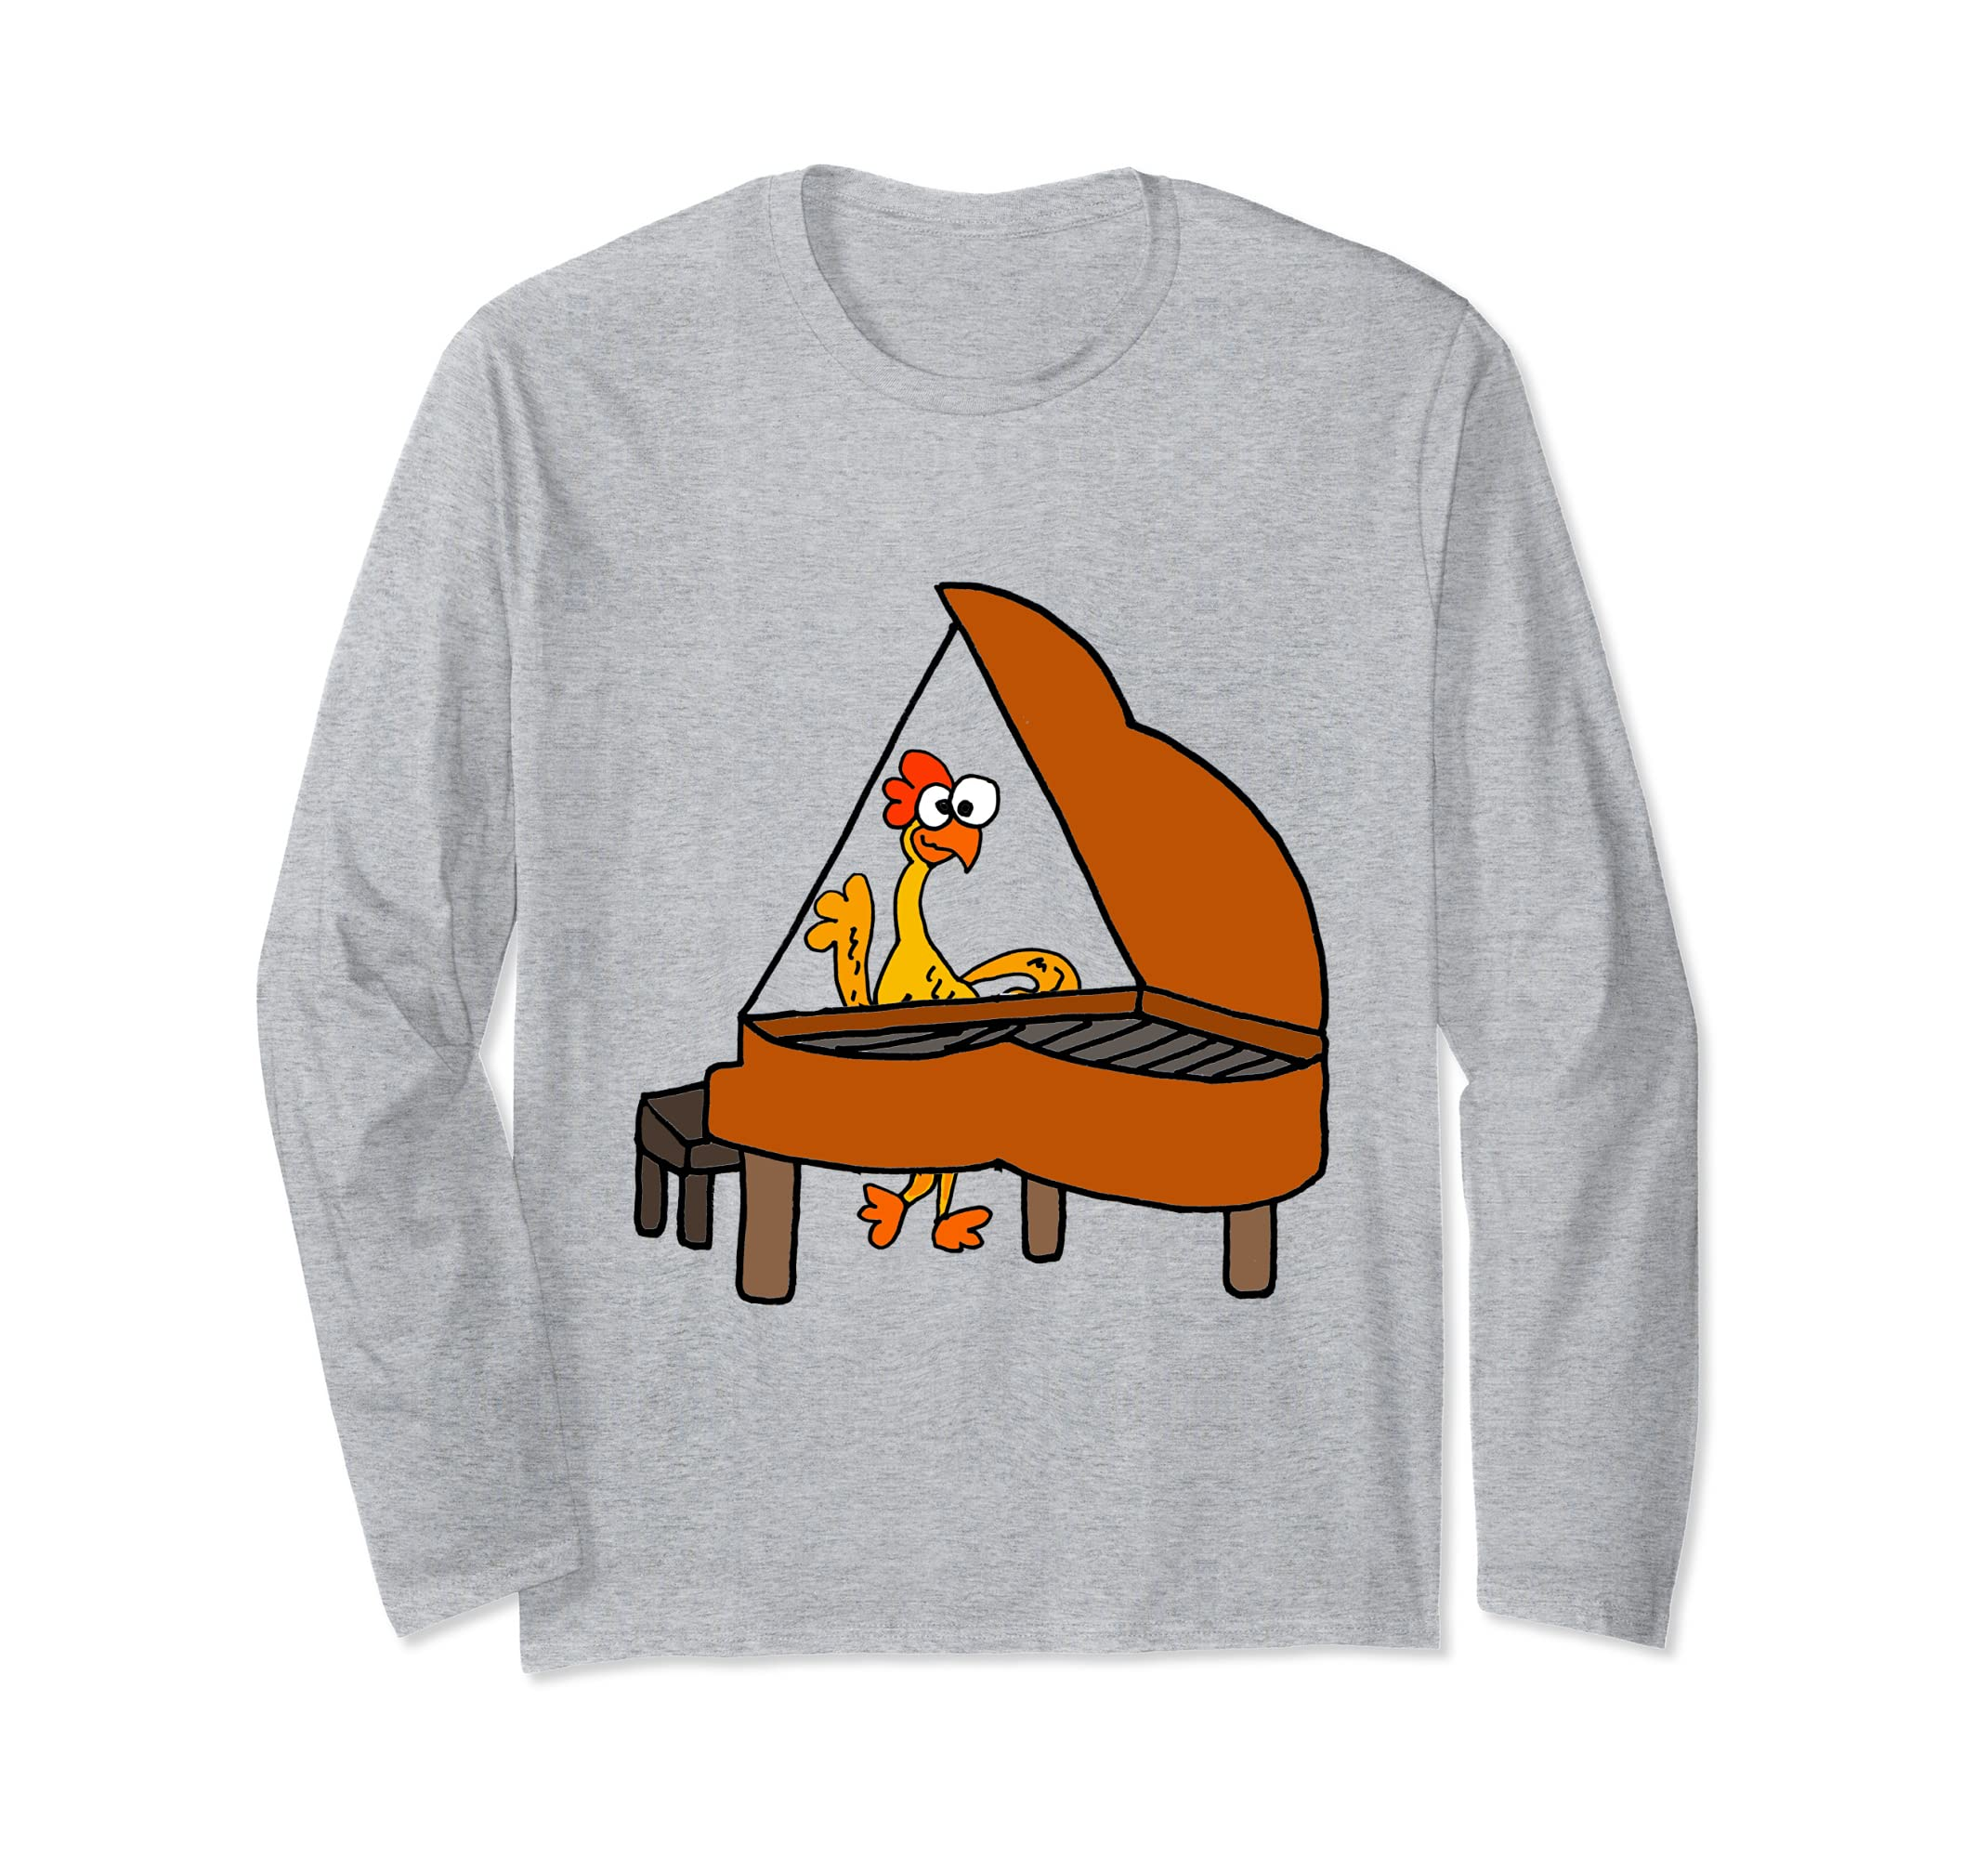 Funny Rubber Chicken and Piano Long Sleeve Shirt-ln